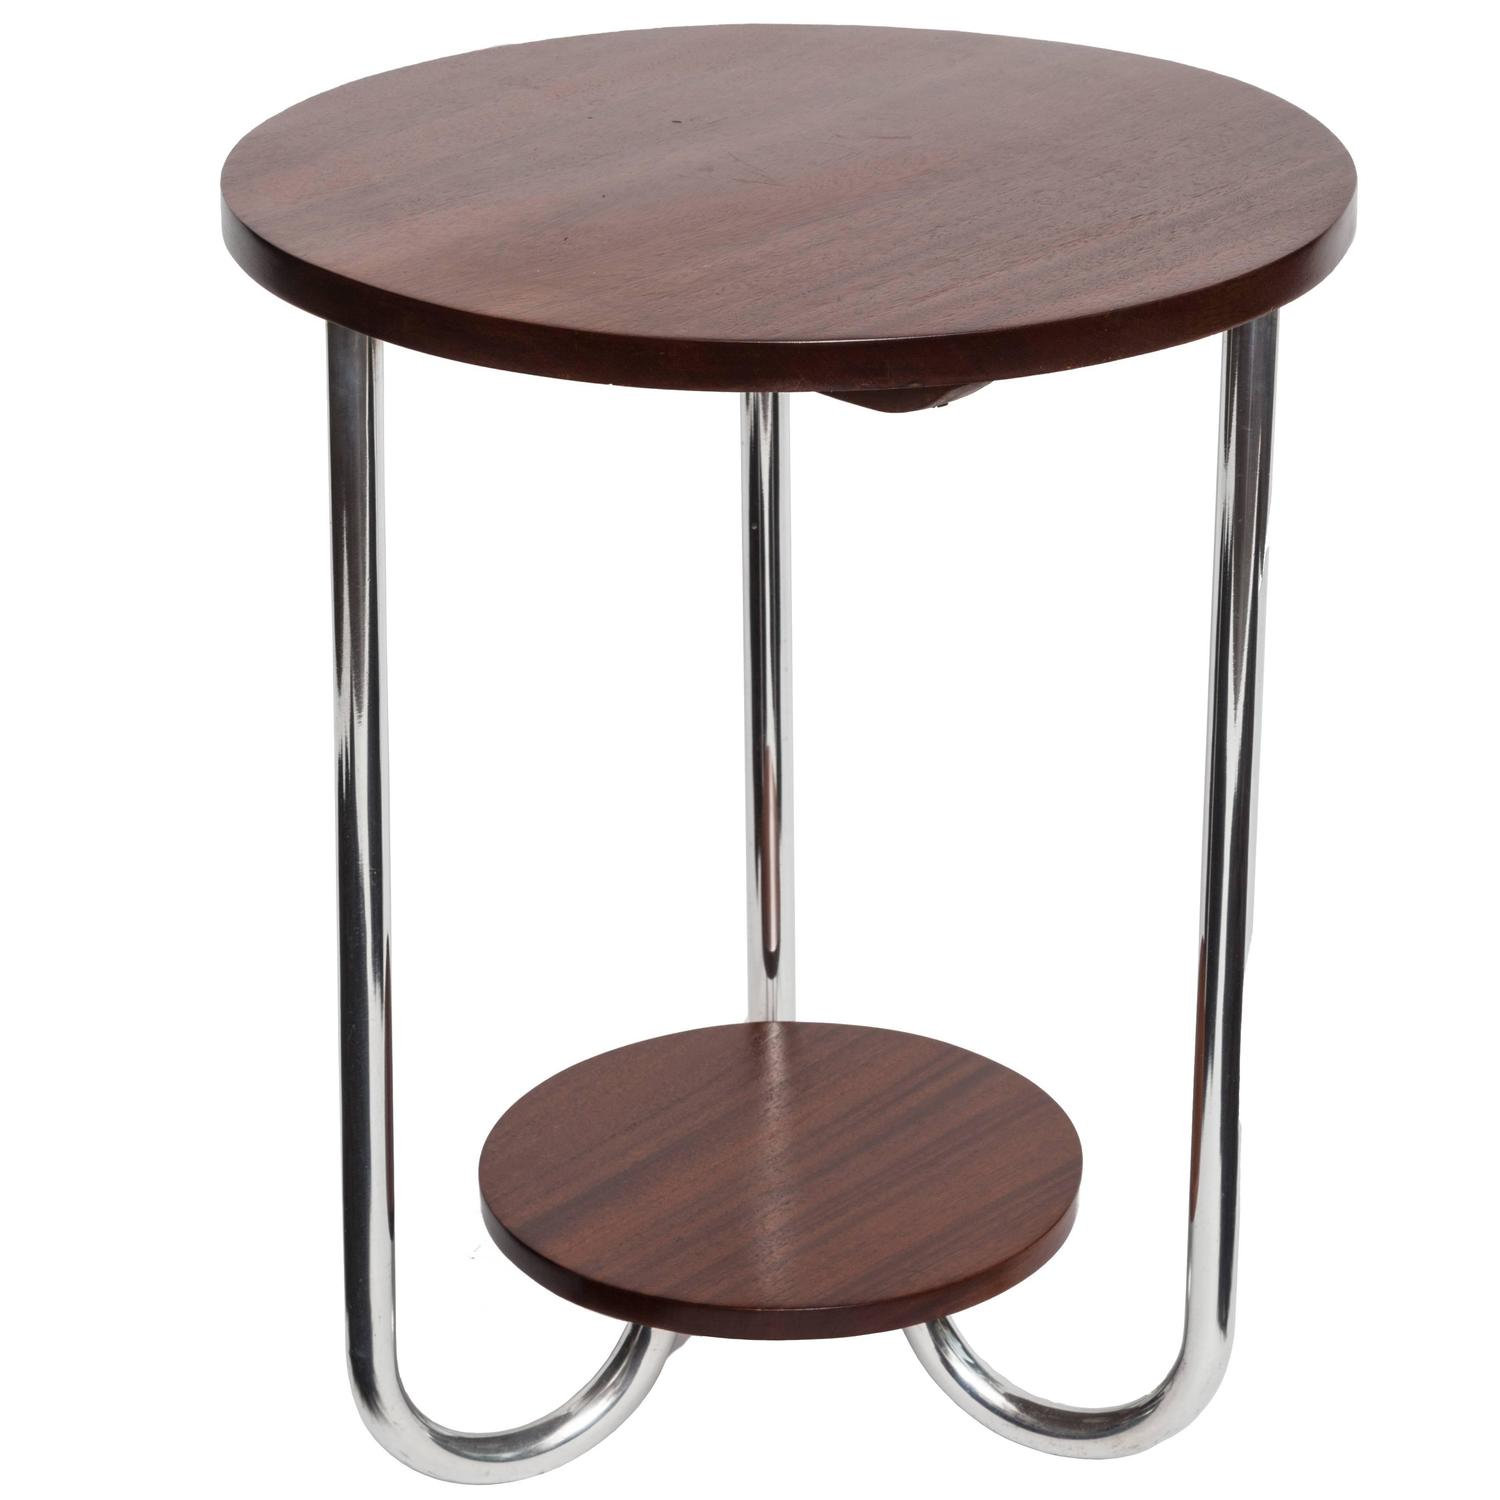 Mid century modern walnut and chrome side table at 1stdibs Modern side table